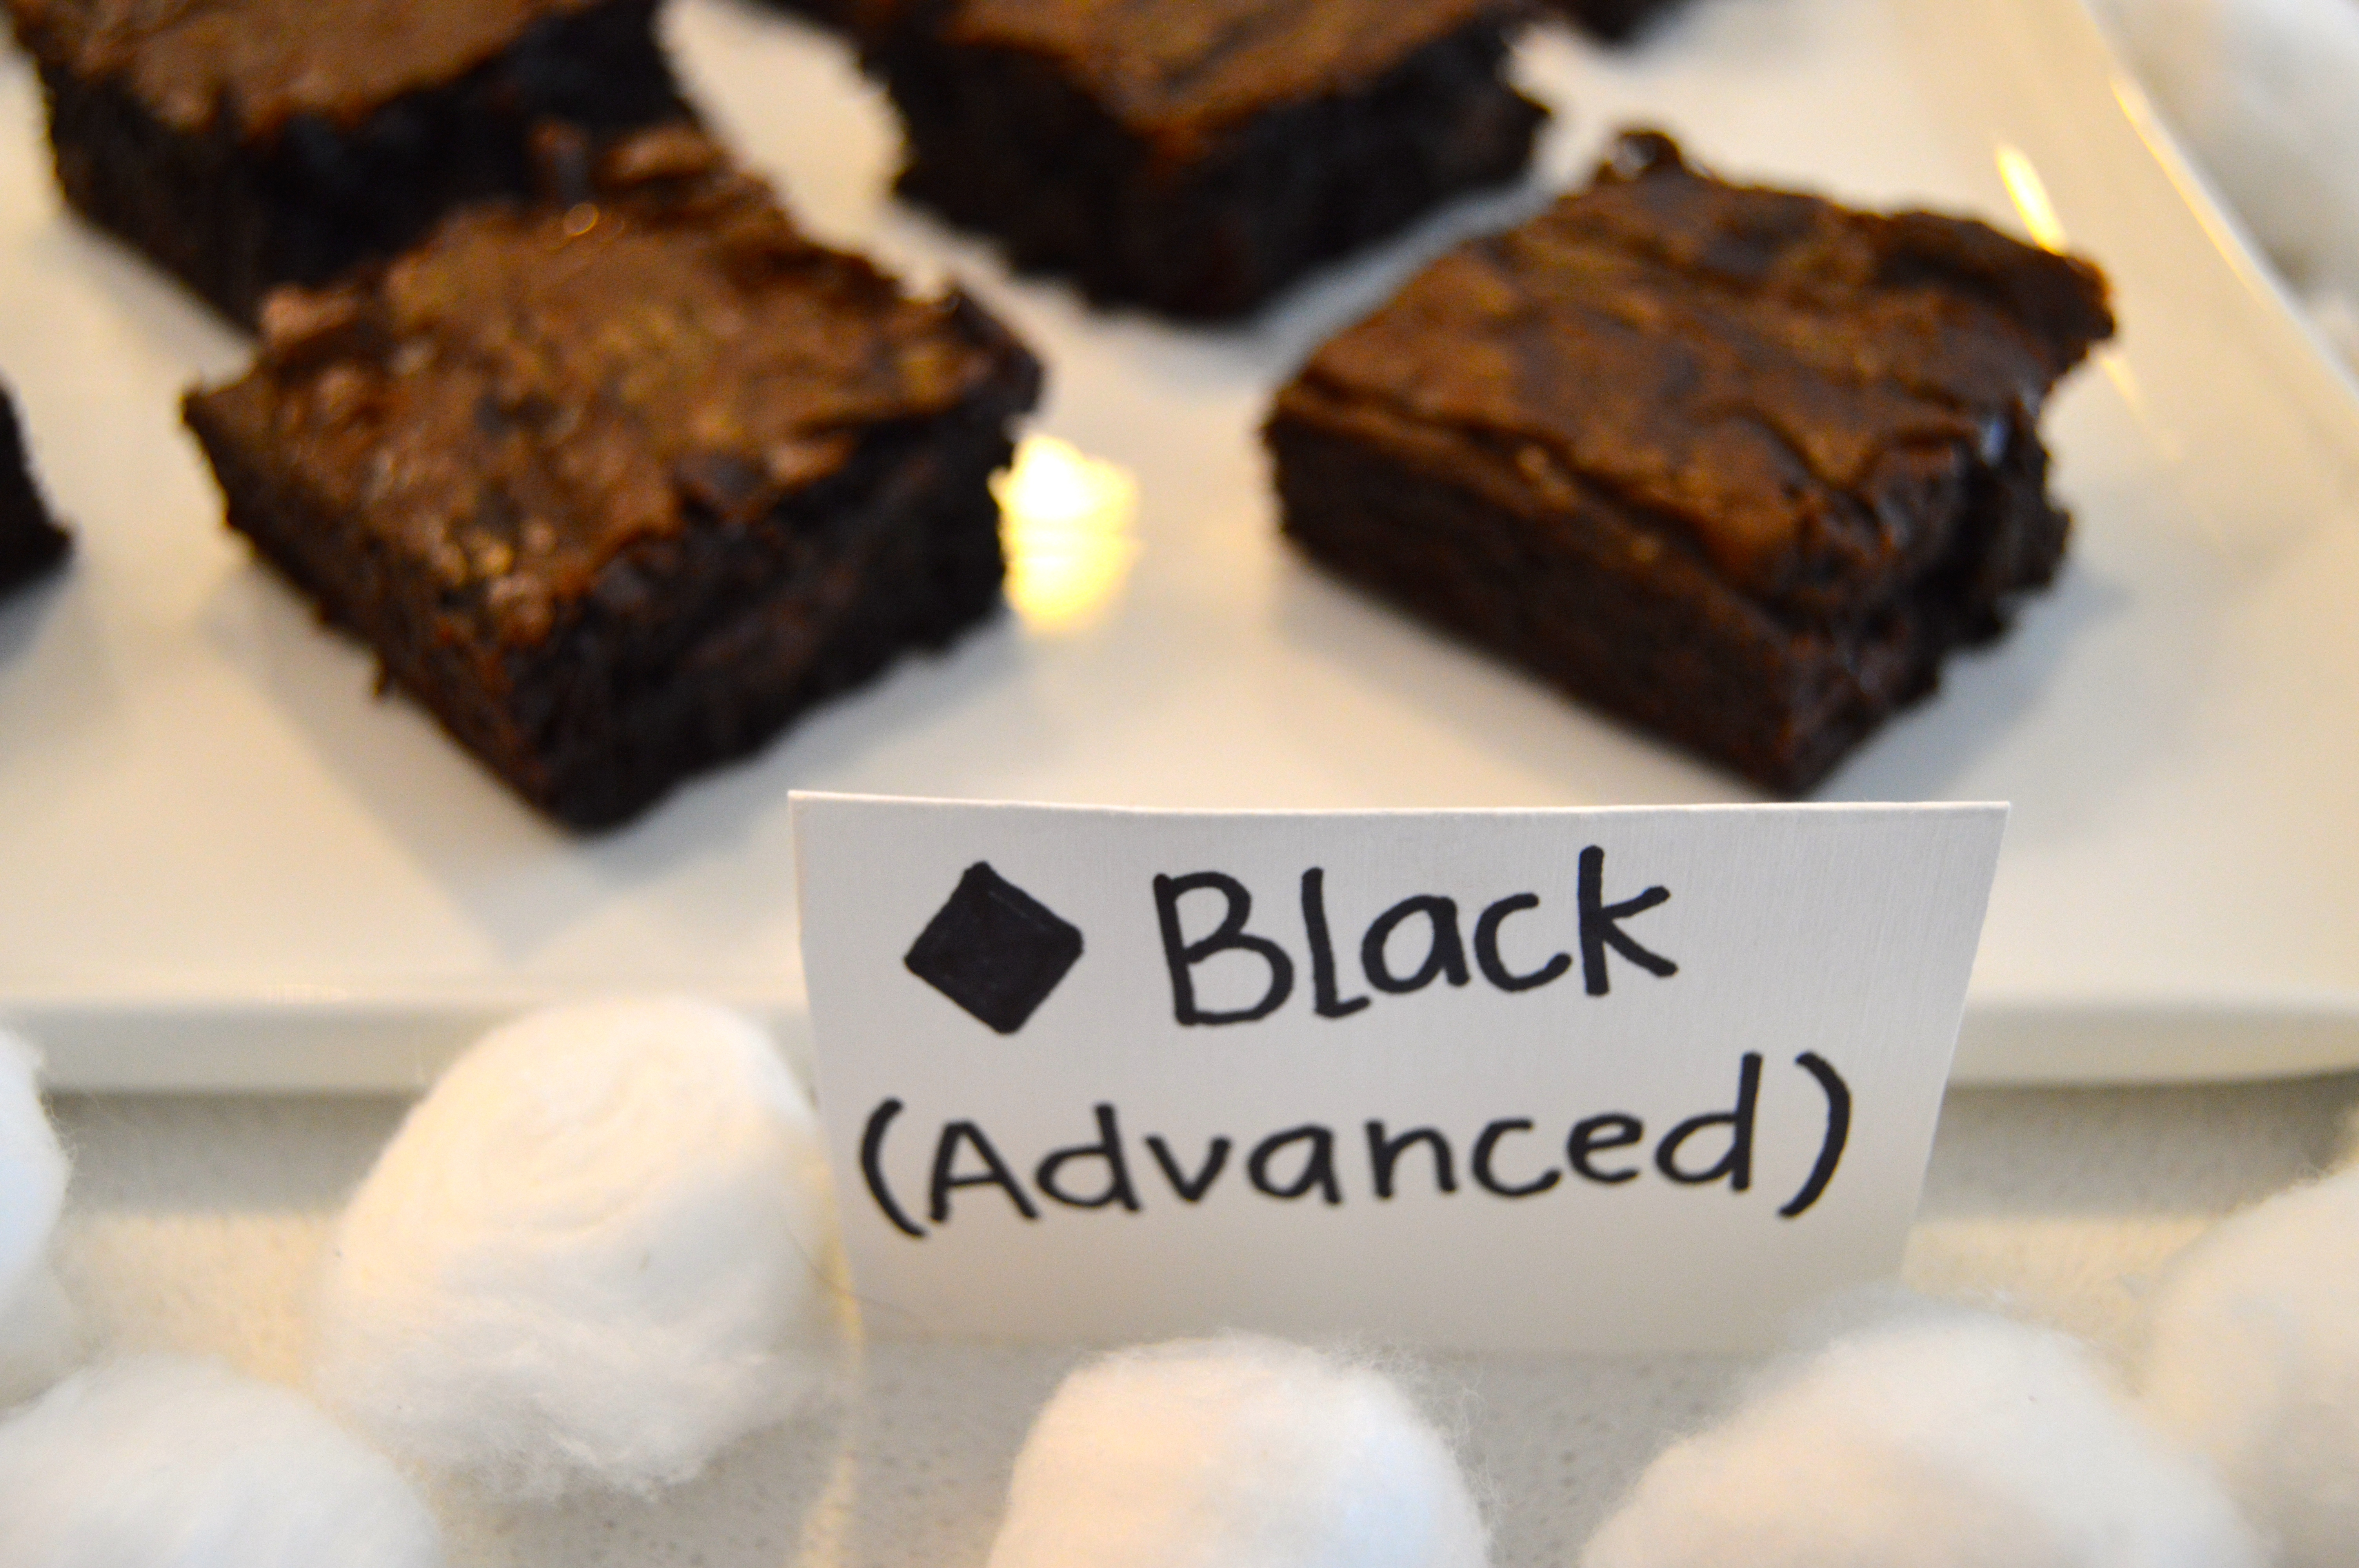 Ski themed party food: Advanced Slopes/Black Diamond (dark chocolate brownie diamonds)